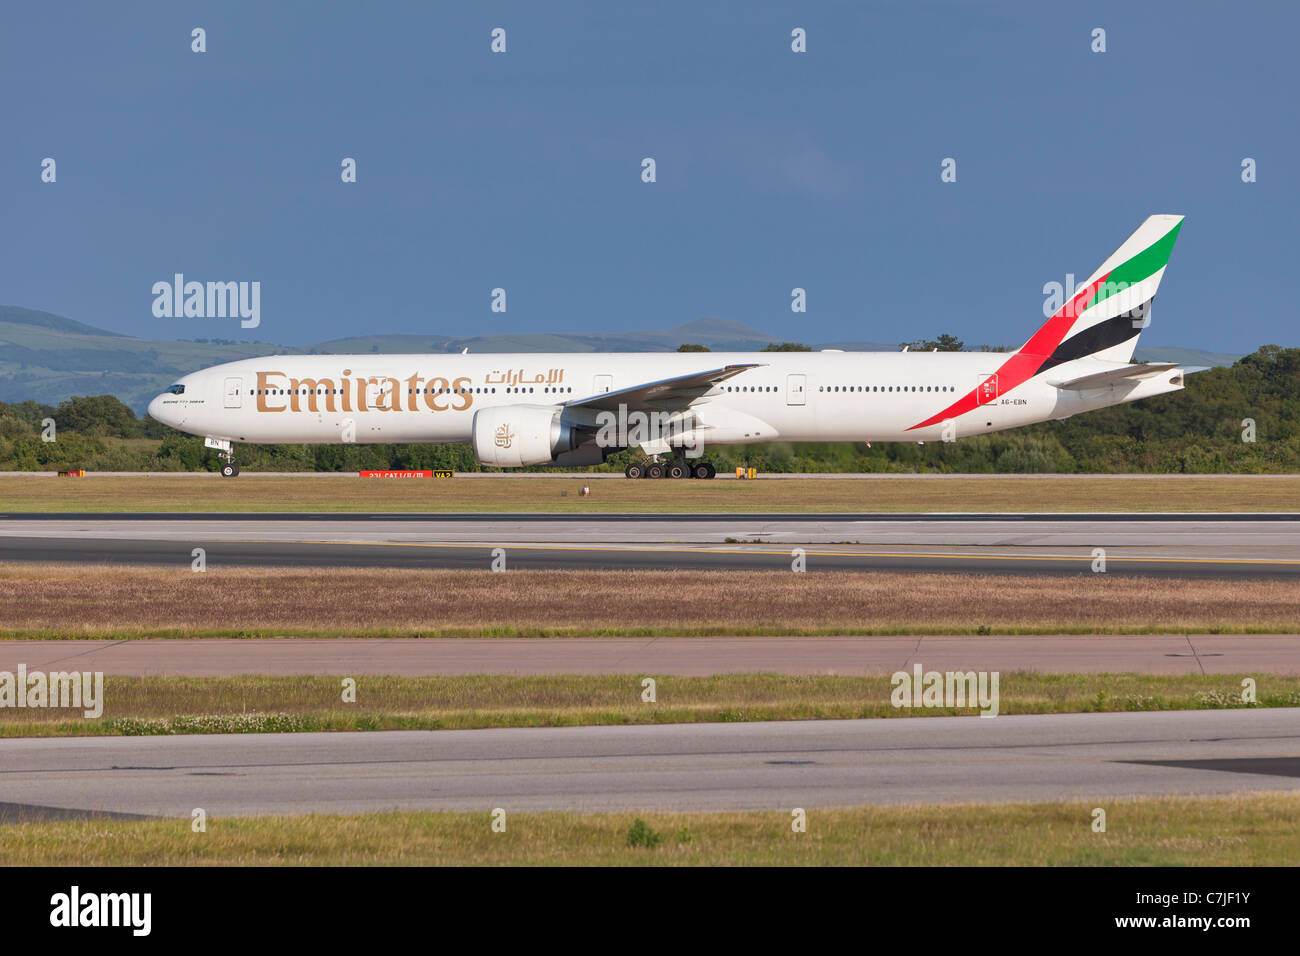 Emirates Airlines aircraft, England - Stock Image